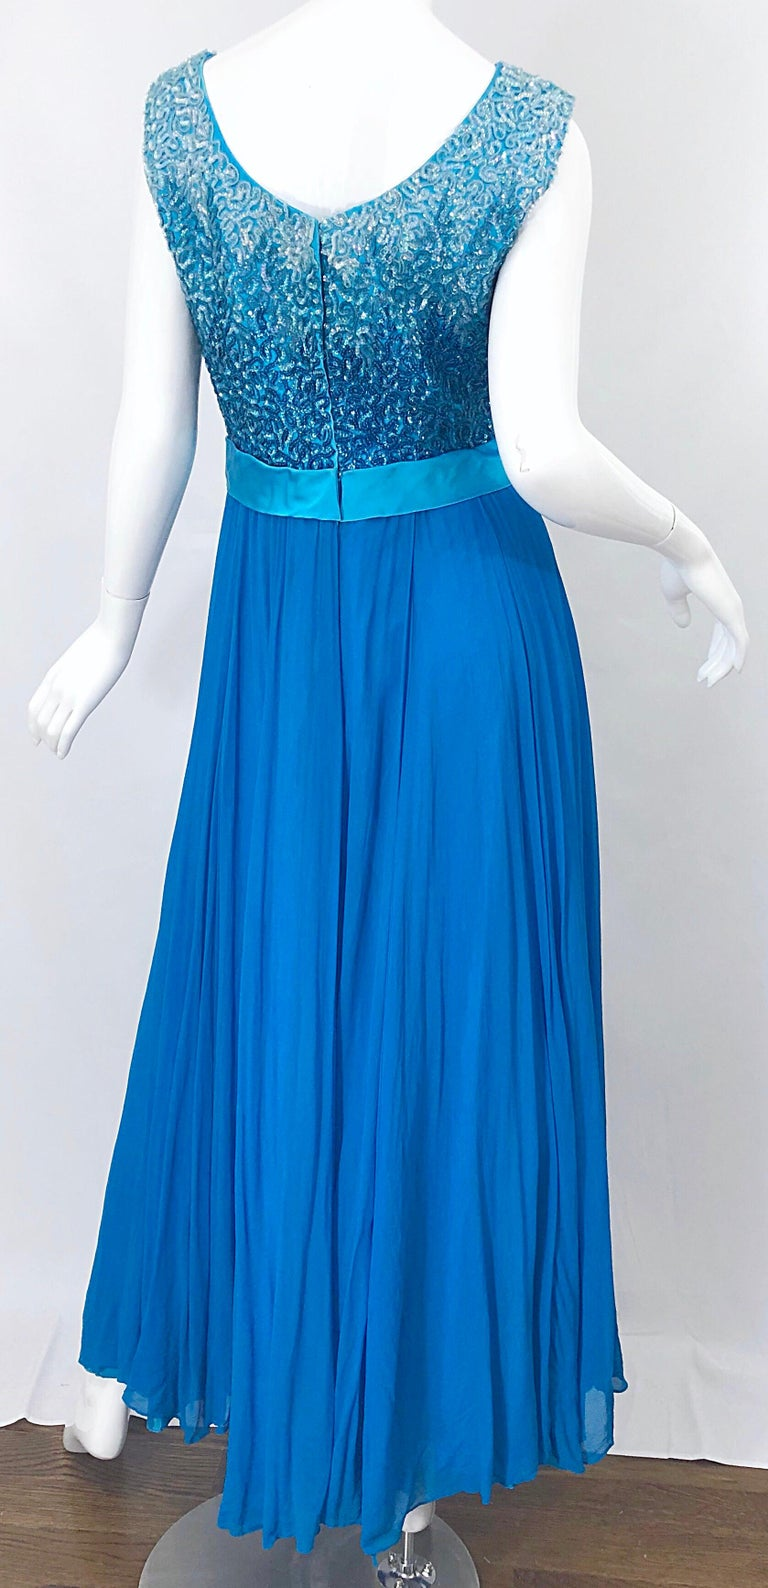 1950s Emma Domb Turquoise Blue Ombre Sequined Silk Chiffon Vintage 50s Gown For Sale 5